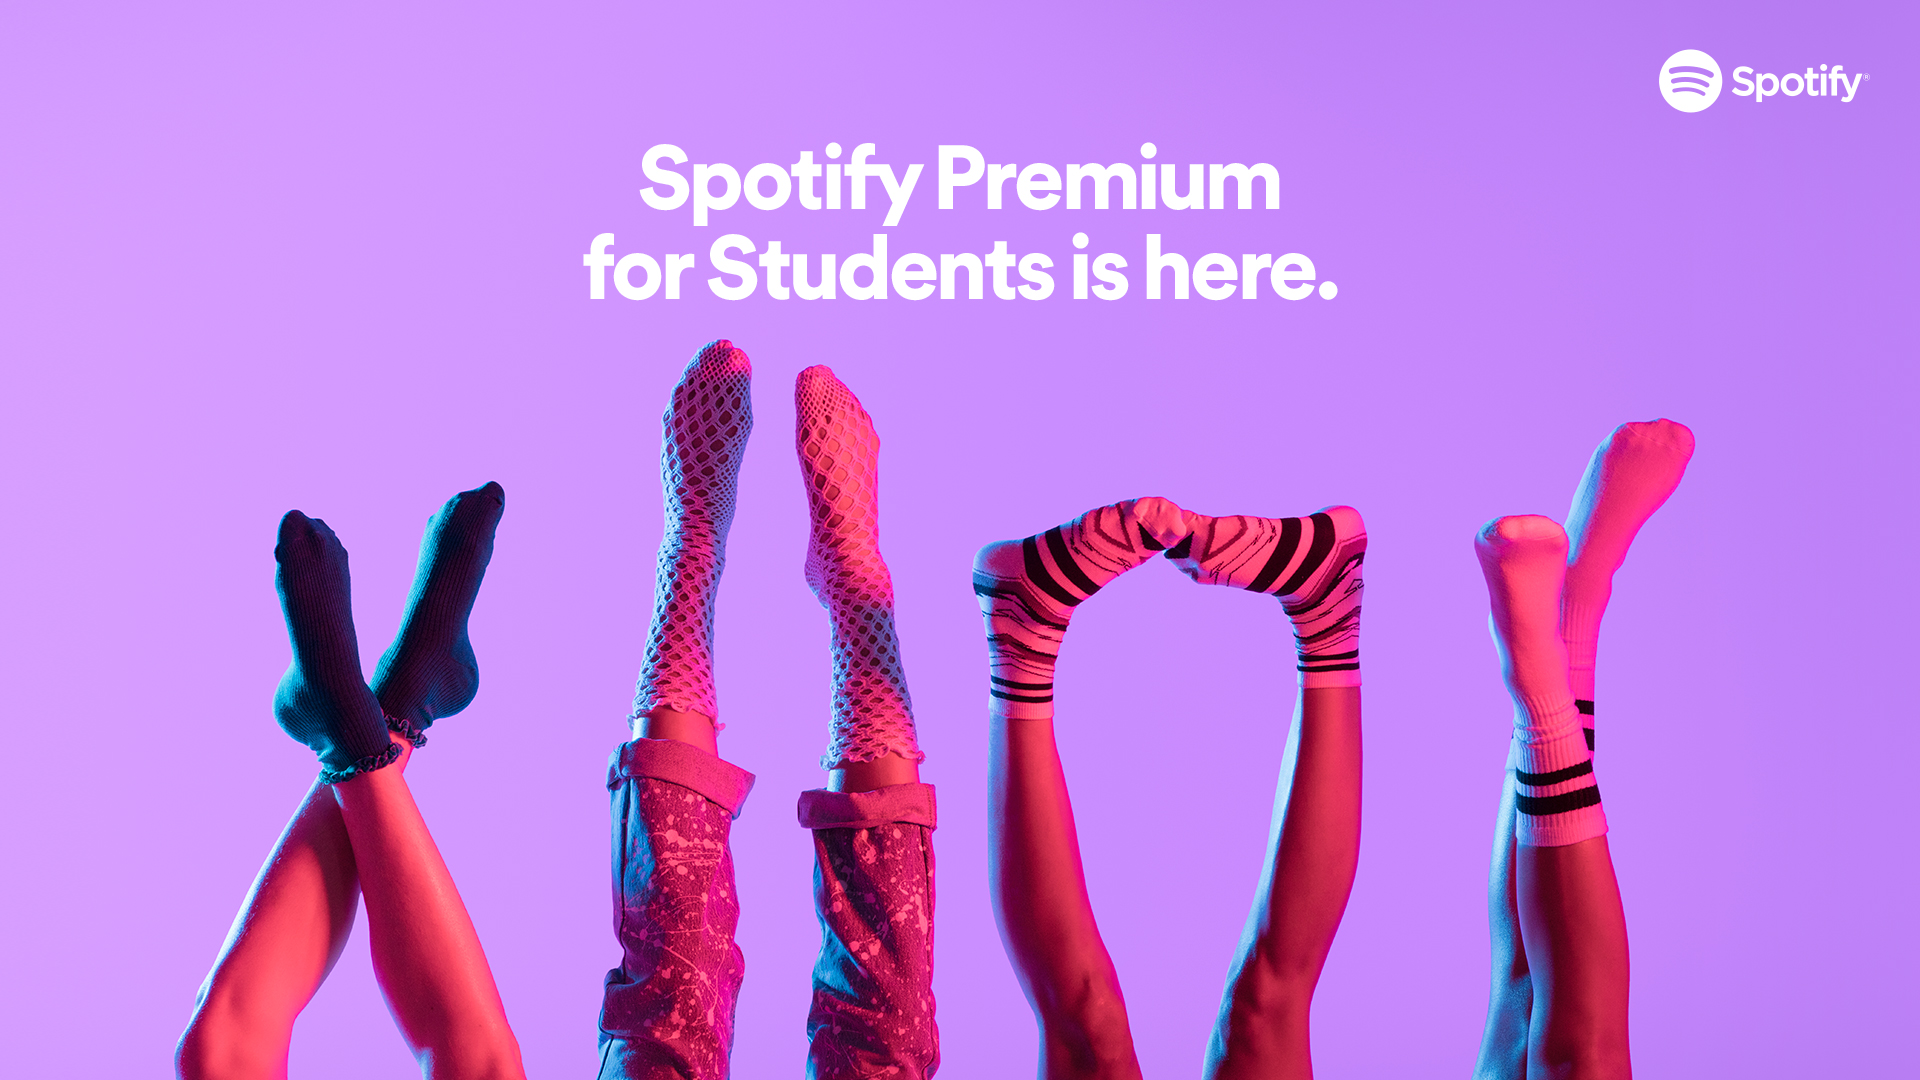 Spotify Premium for Students